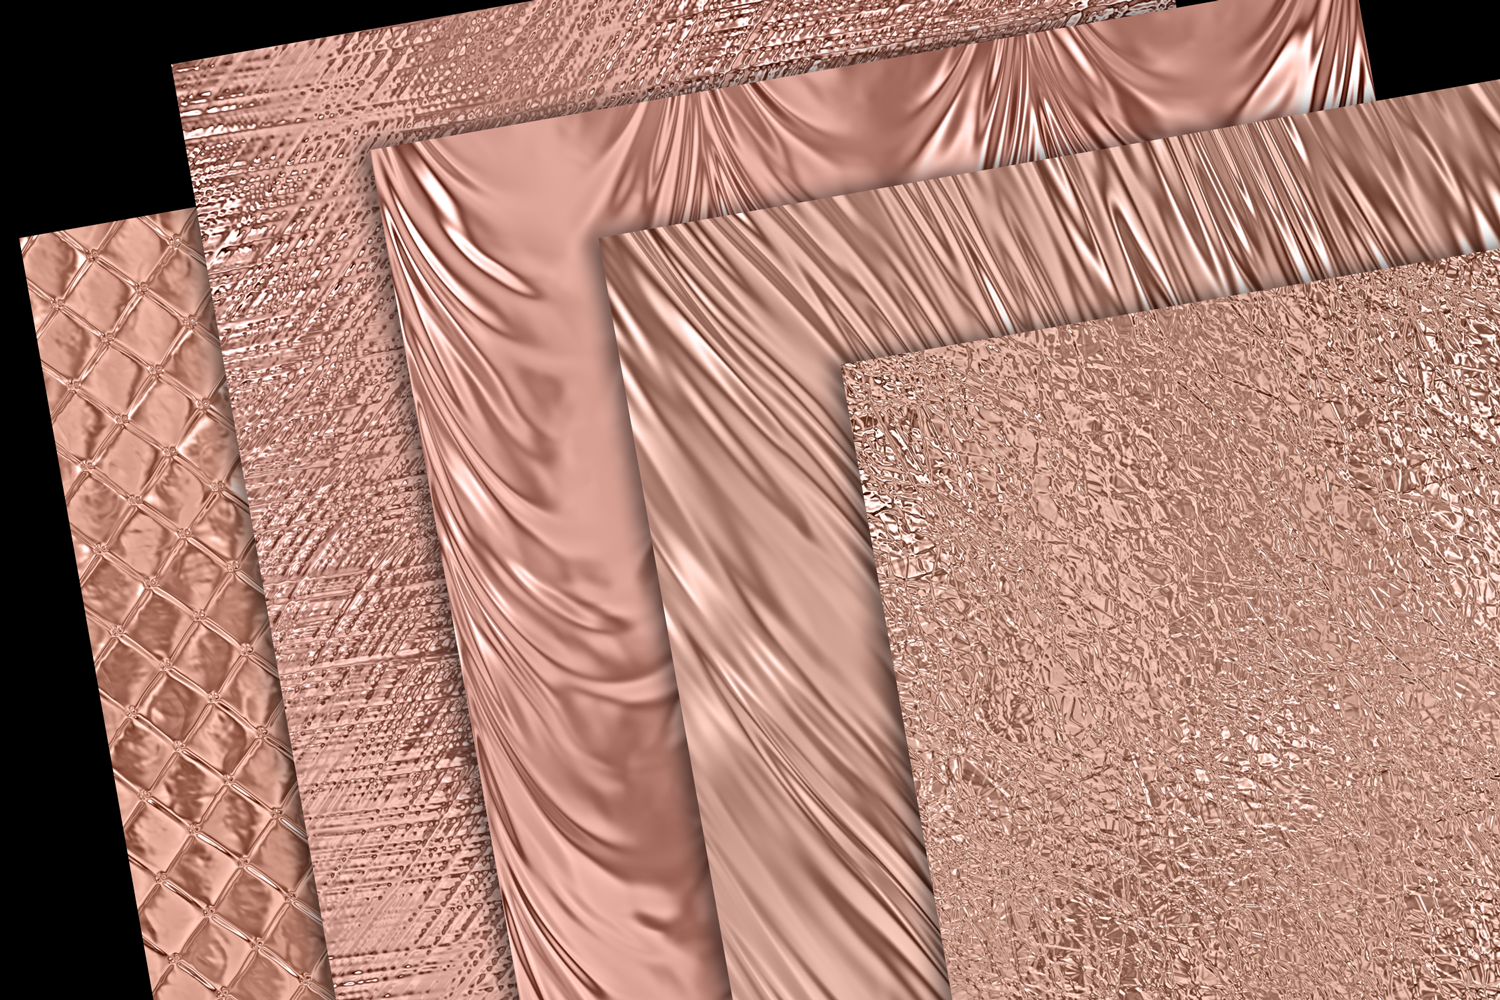 Shiny Rose Gold Metallics example image 3